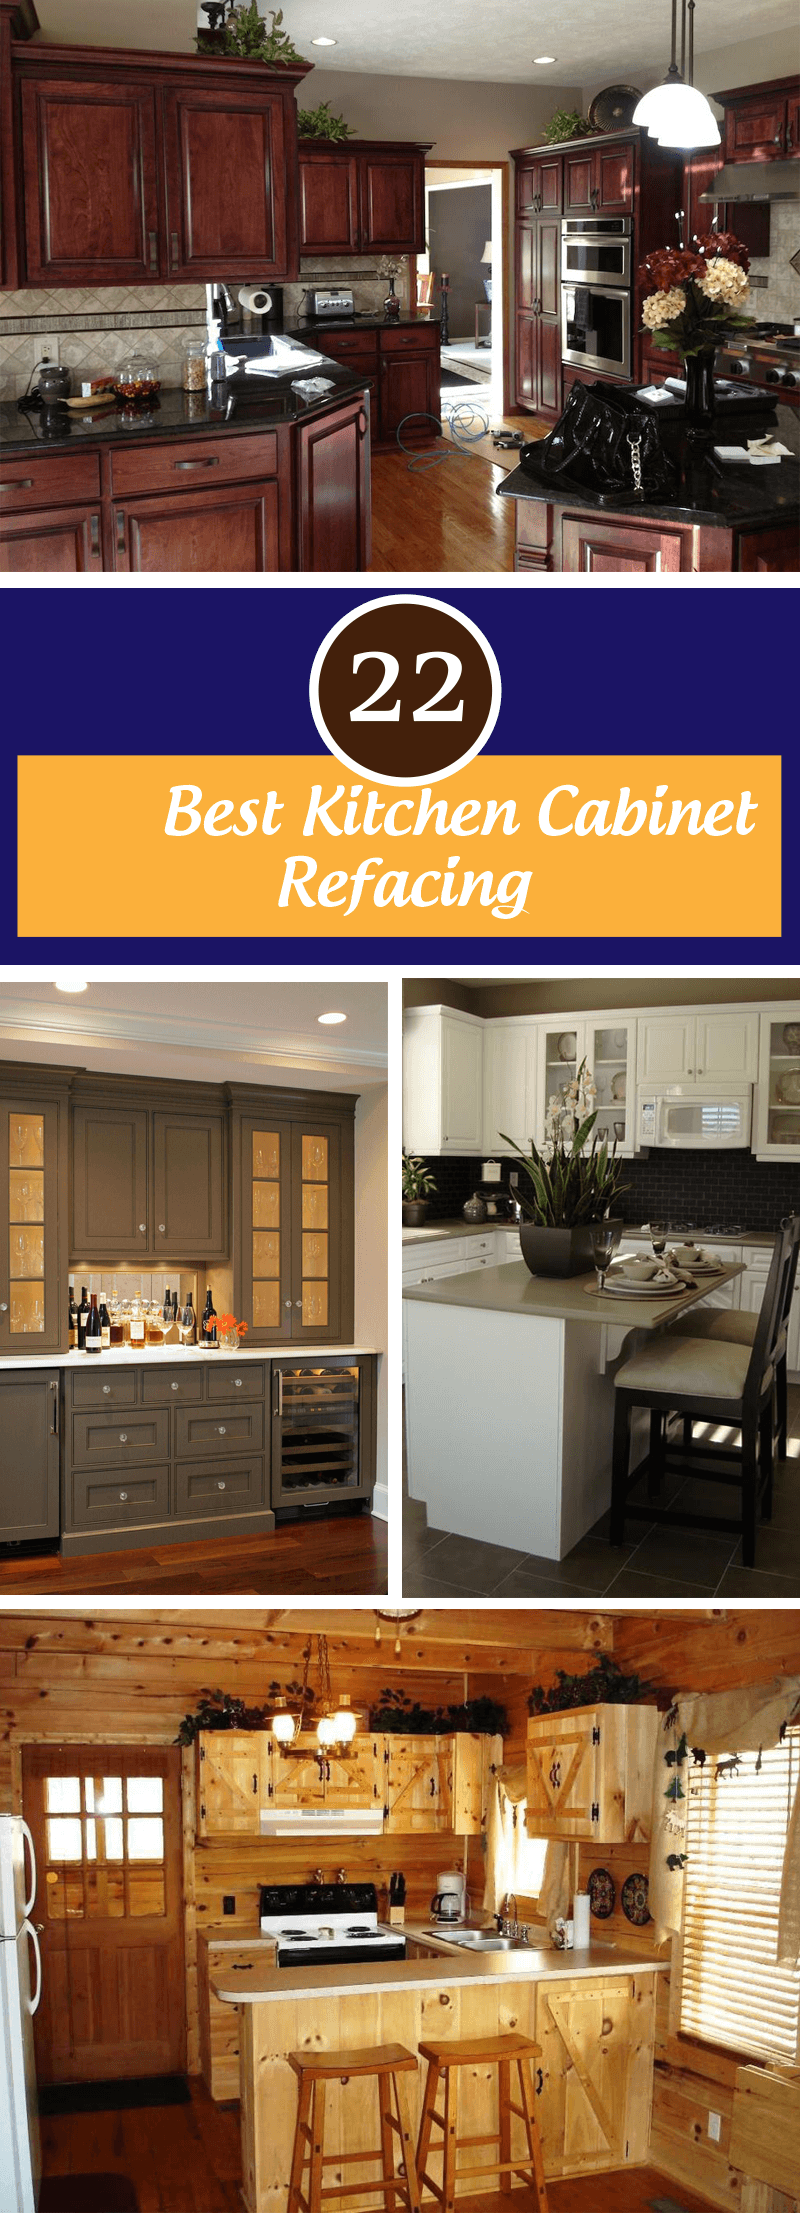 Best Kitchen Cabinet Refacing